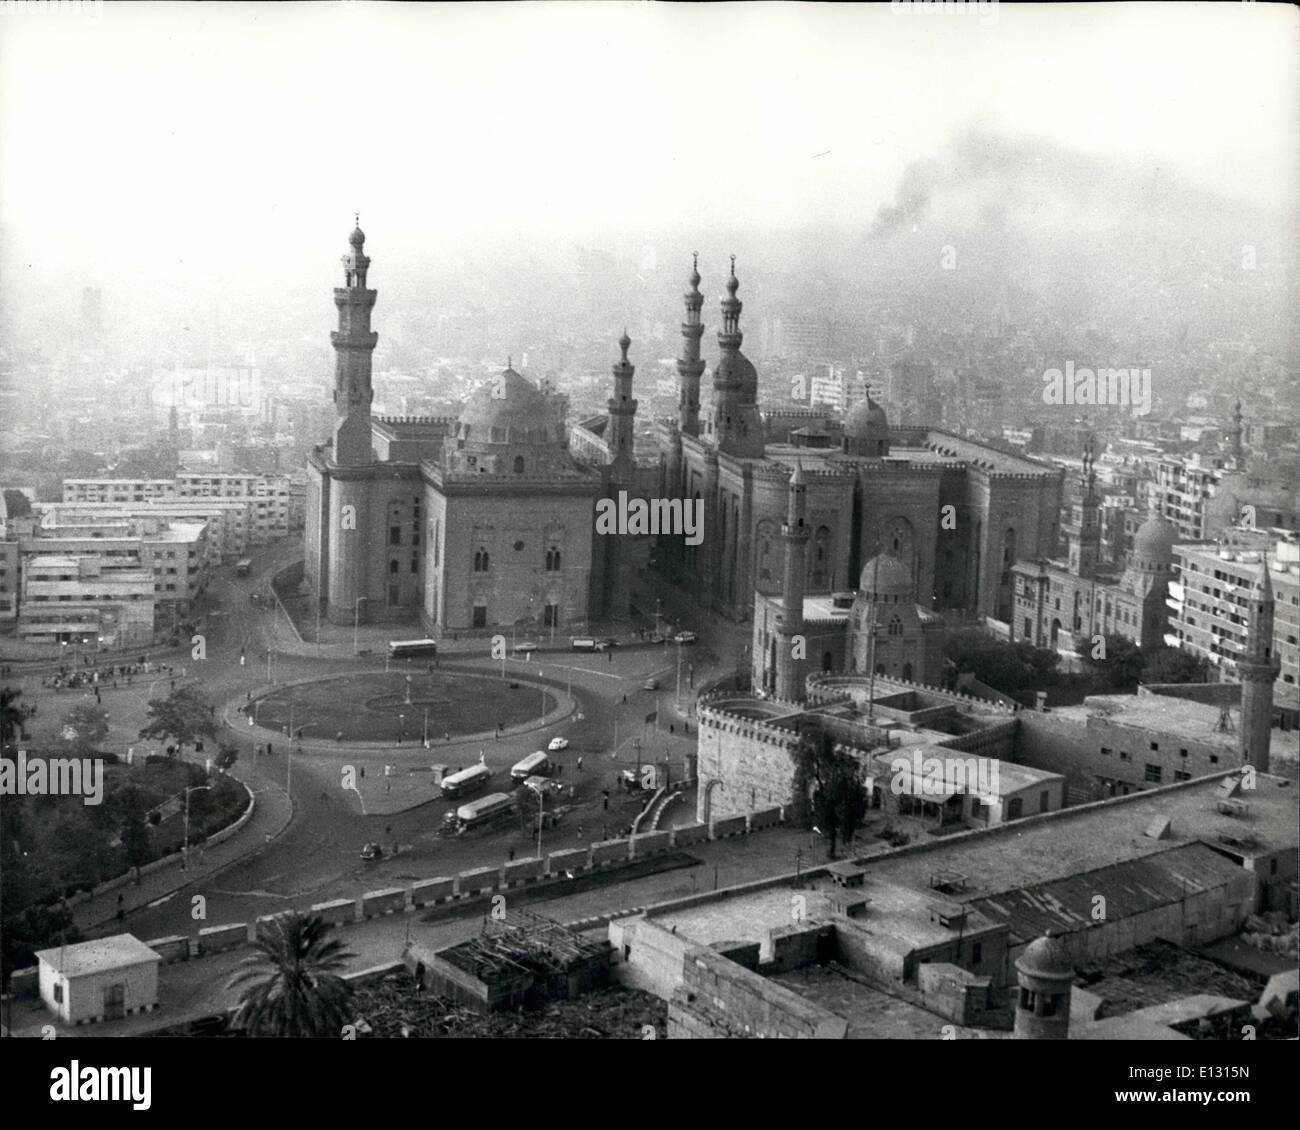 Feb. 26, 2012 - Al Azhar University, Coiro; The Resplendent stronghold of Islam - lies in the heart of Cairo. It is surrounded by the old popular quarters of the city. - Stock Image